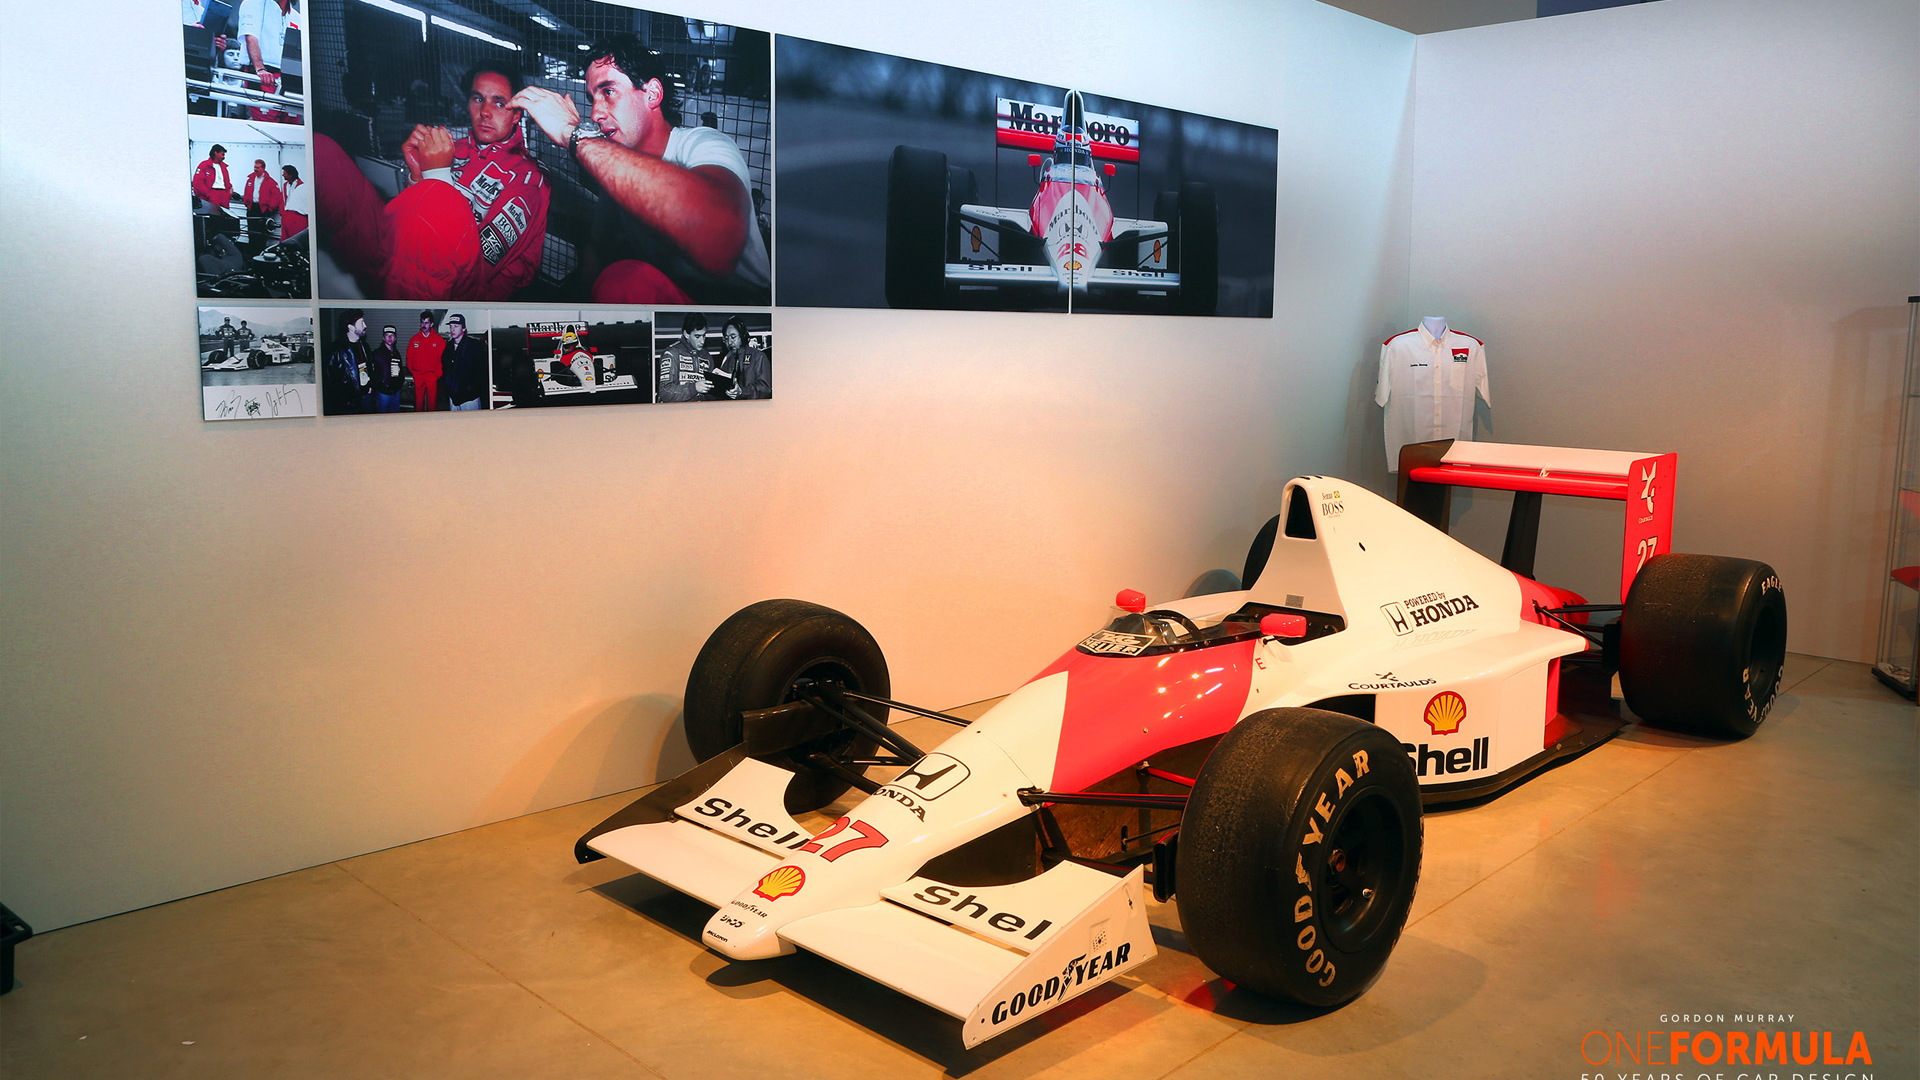 1988 McLaren MP4/4 Formula One race car